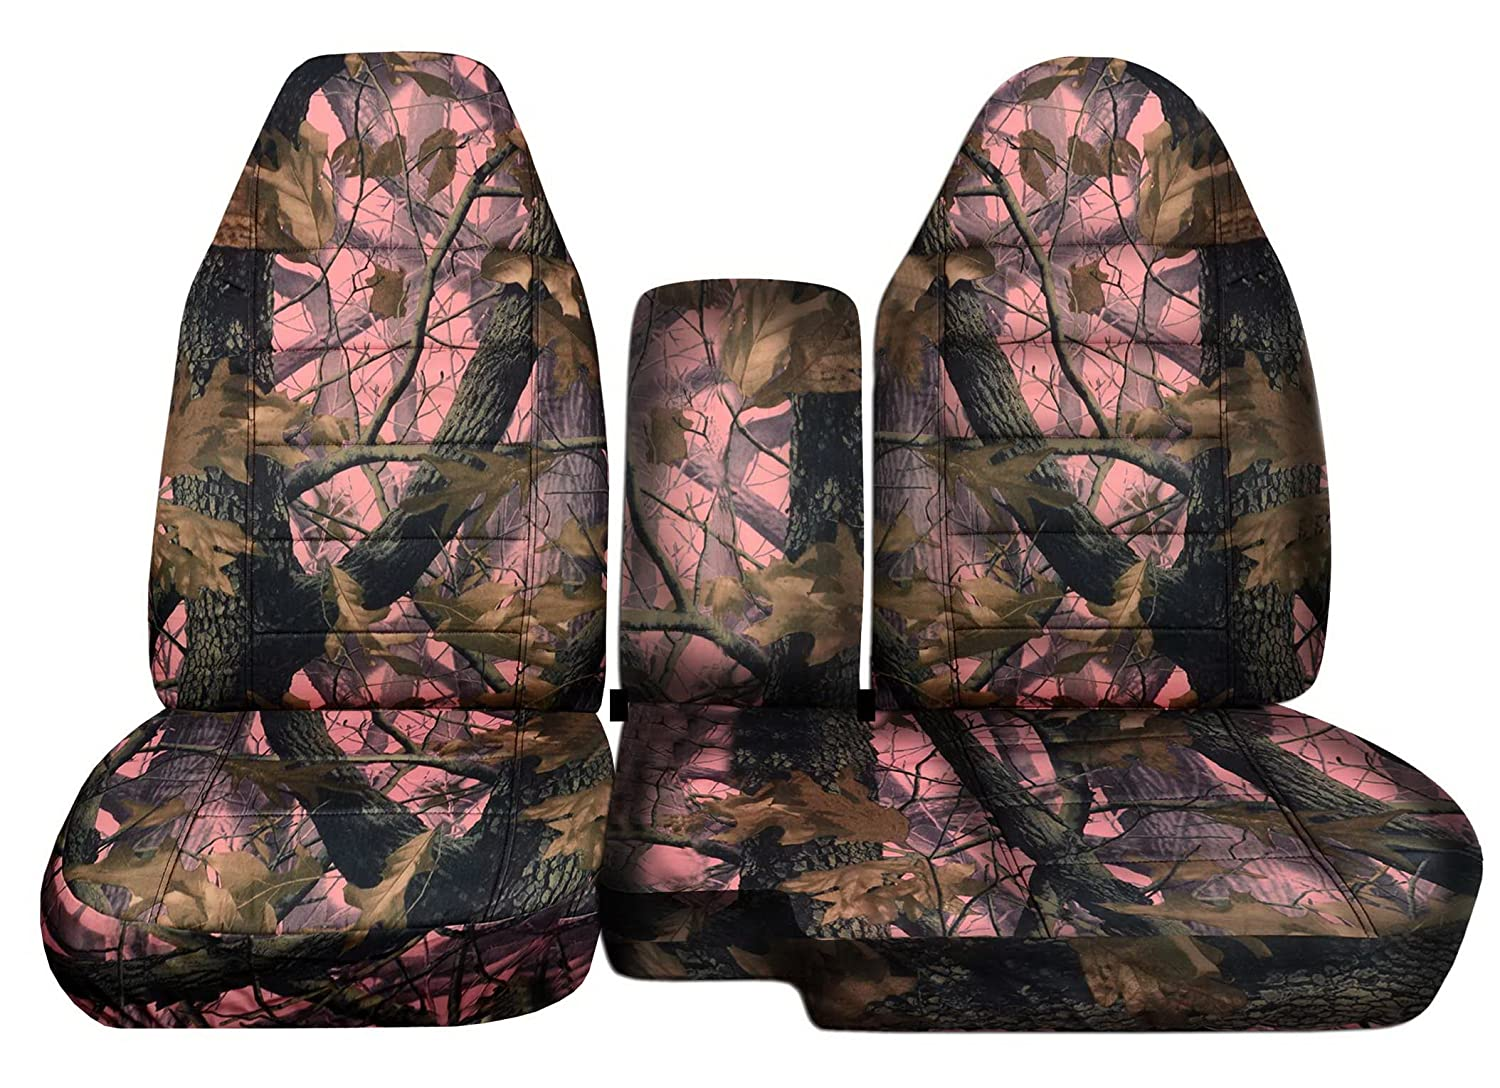 Navy Camouflage Designcovers 2004 to 2012 Ford Ranger 60-40 Camouflage Truck Seat Covers Solid Armrest Cover Included